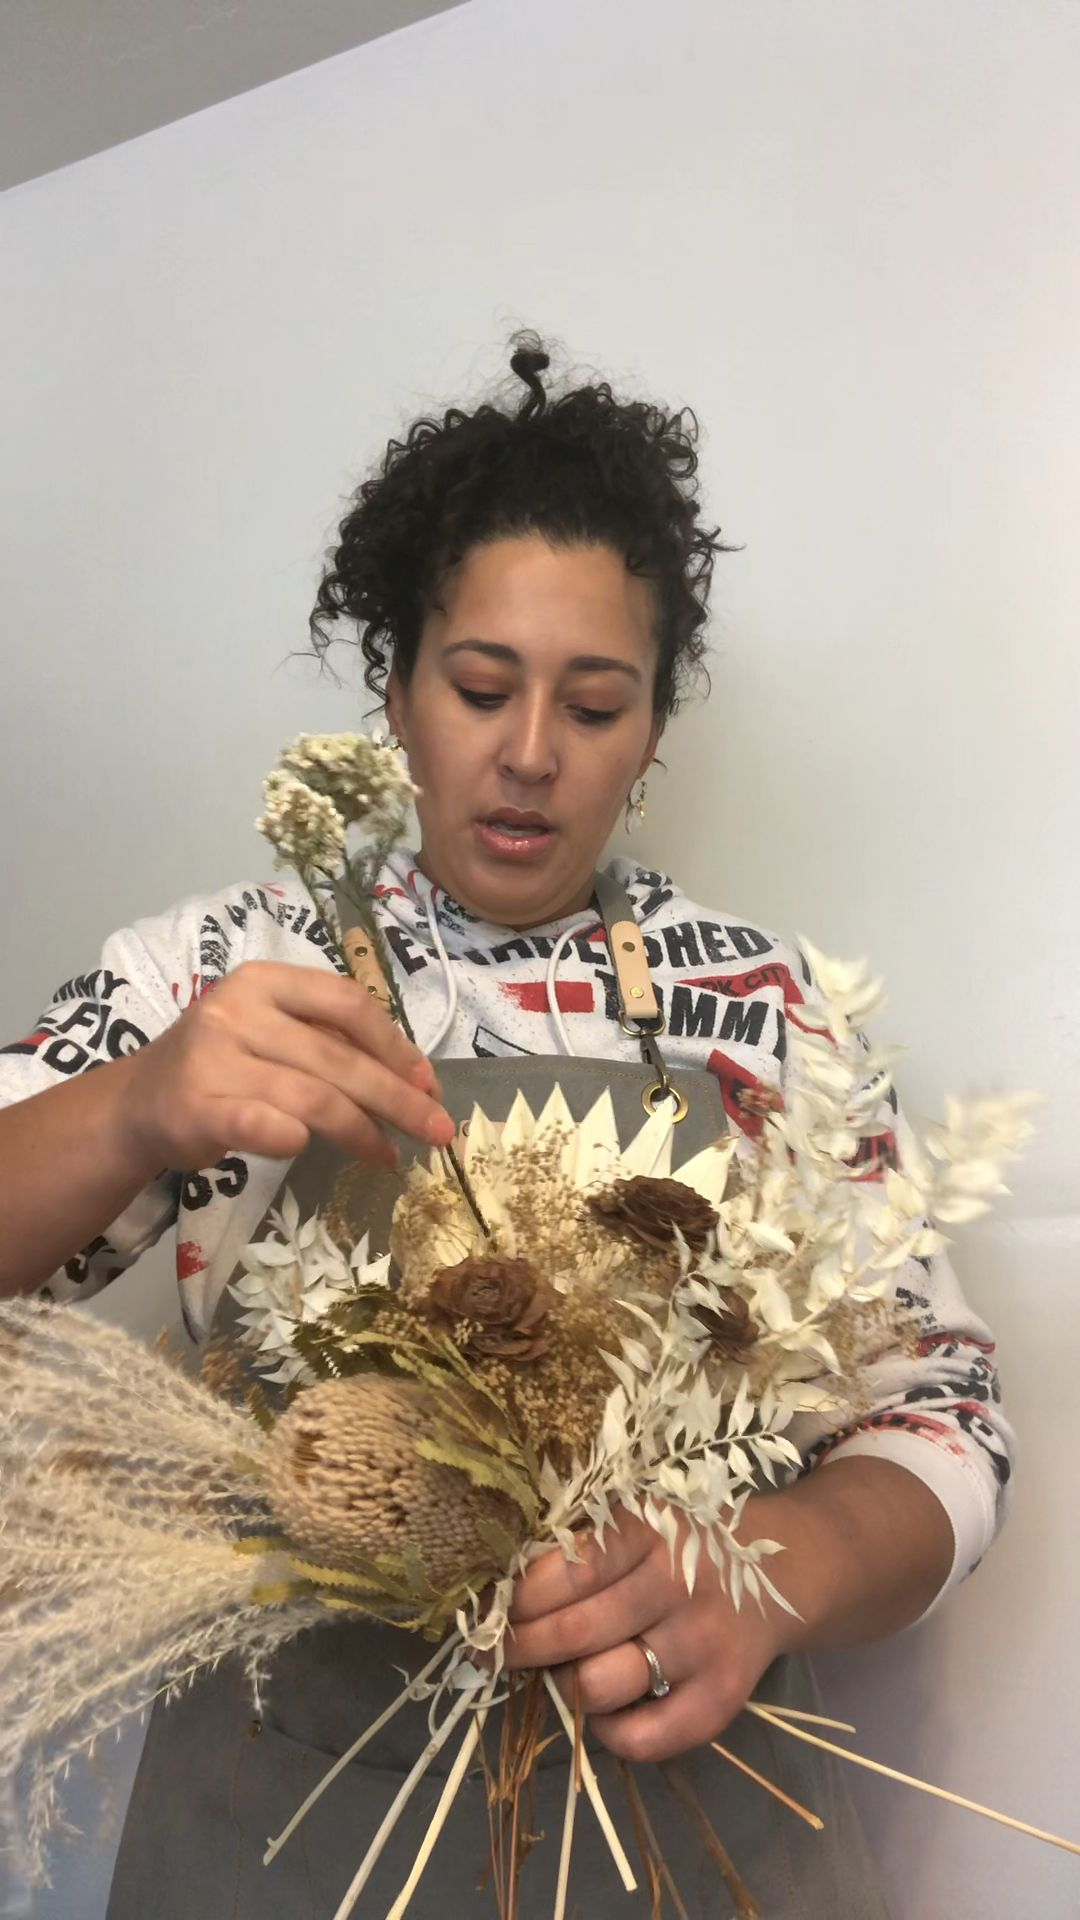 Learn how to make a natural dried bridal bouquet made to last for years to come! #driedflowers #dried #dying #bridalbouquet #pampas #flowers #weddingideas #weddingflowers #keepsake